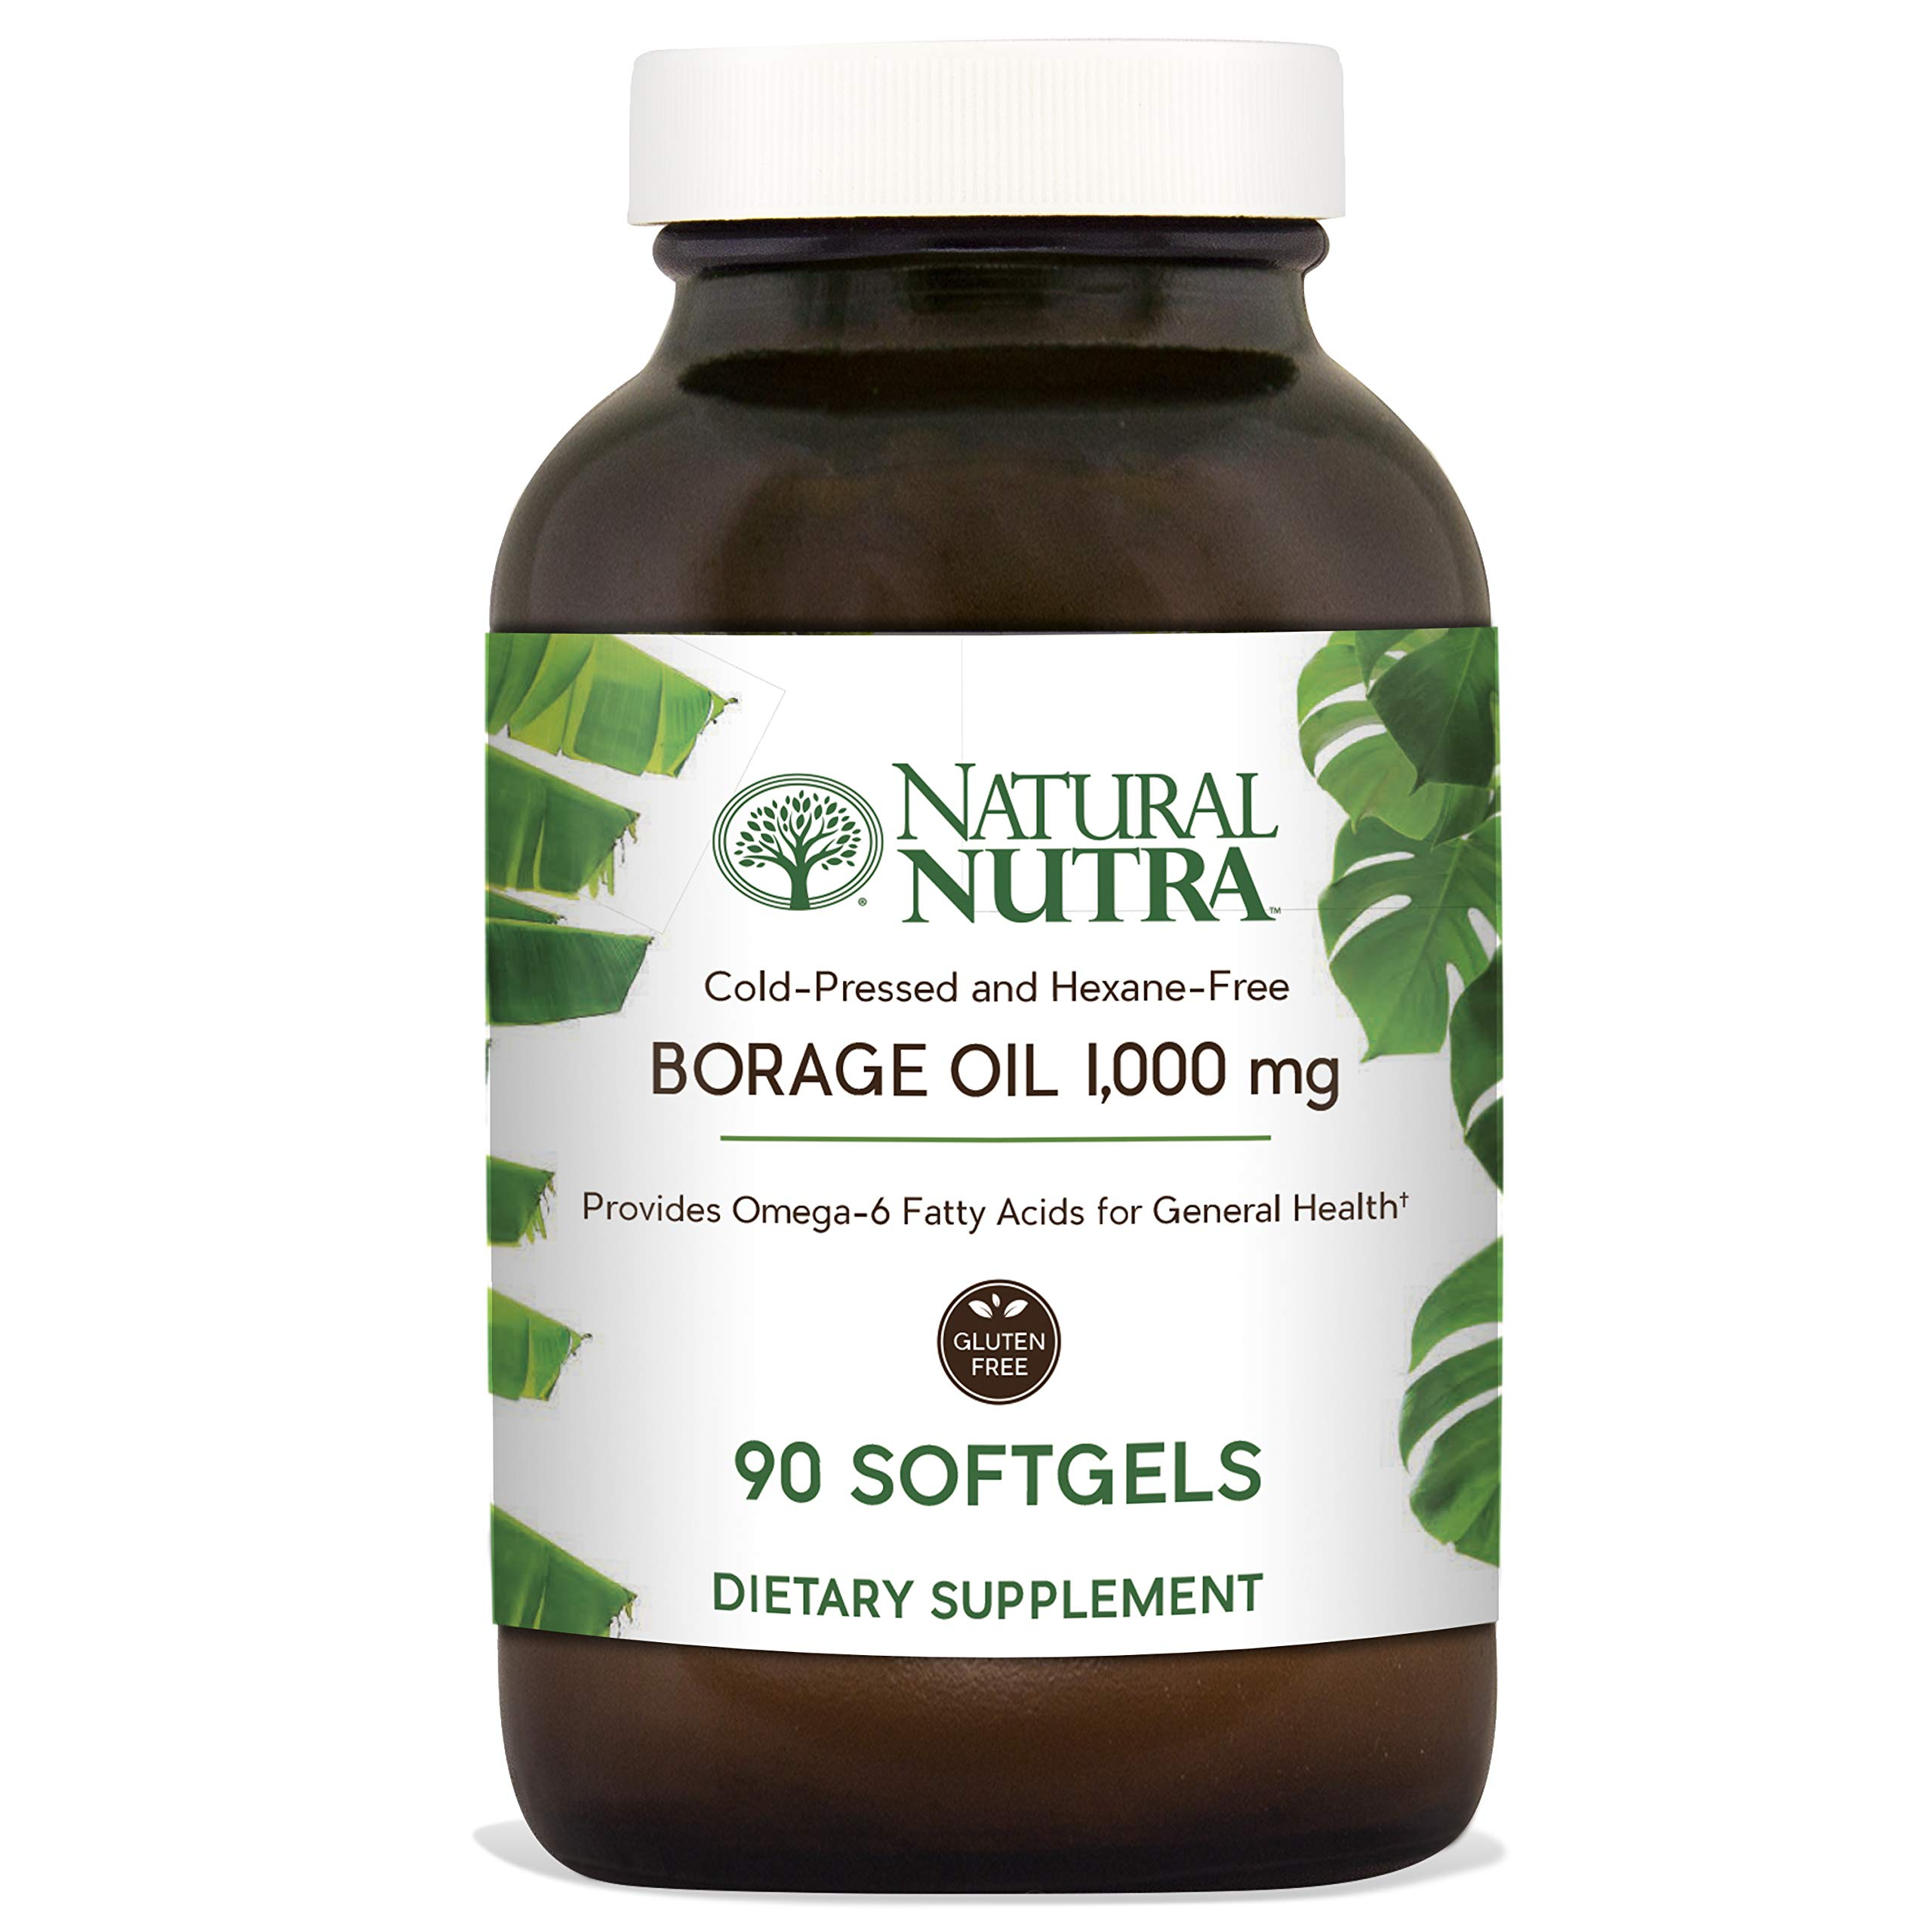 Natural Nutra Borage Oil, Omega 6 Essential Fatty Acids Supplement with GLA, Linoleic, Oleic and Palmitic Acid, Cold Pressed, Herbicide and Pesticide Free, 90 Softgels by Natural Nutra